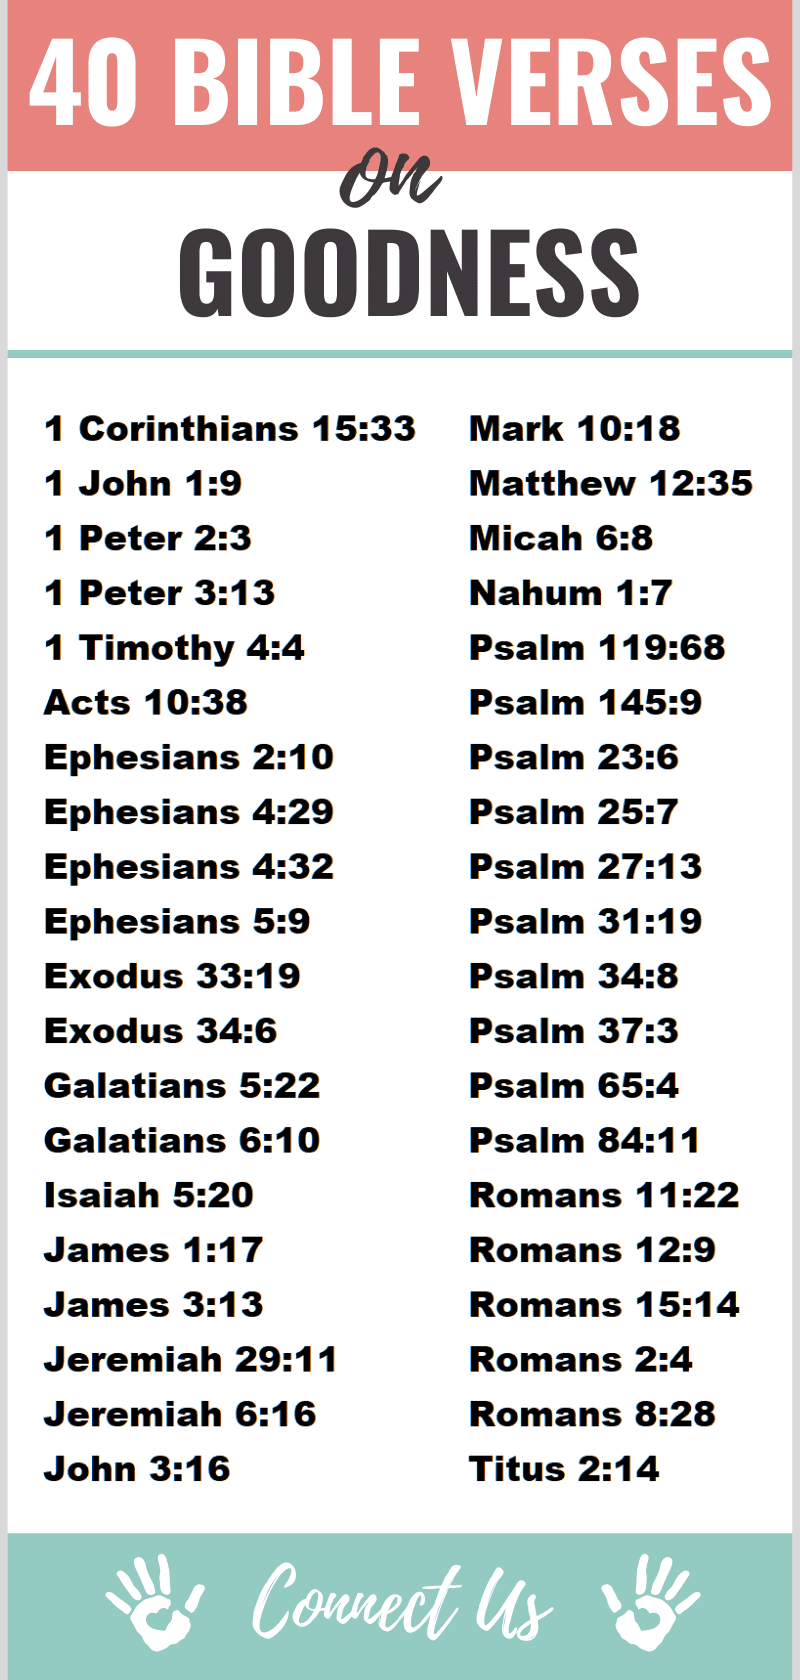 Bible Verses on Goodness